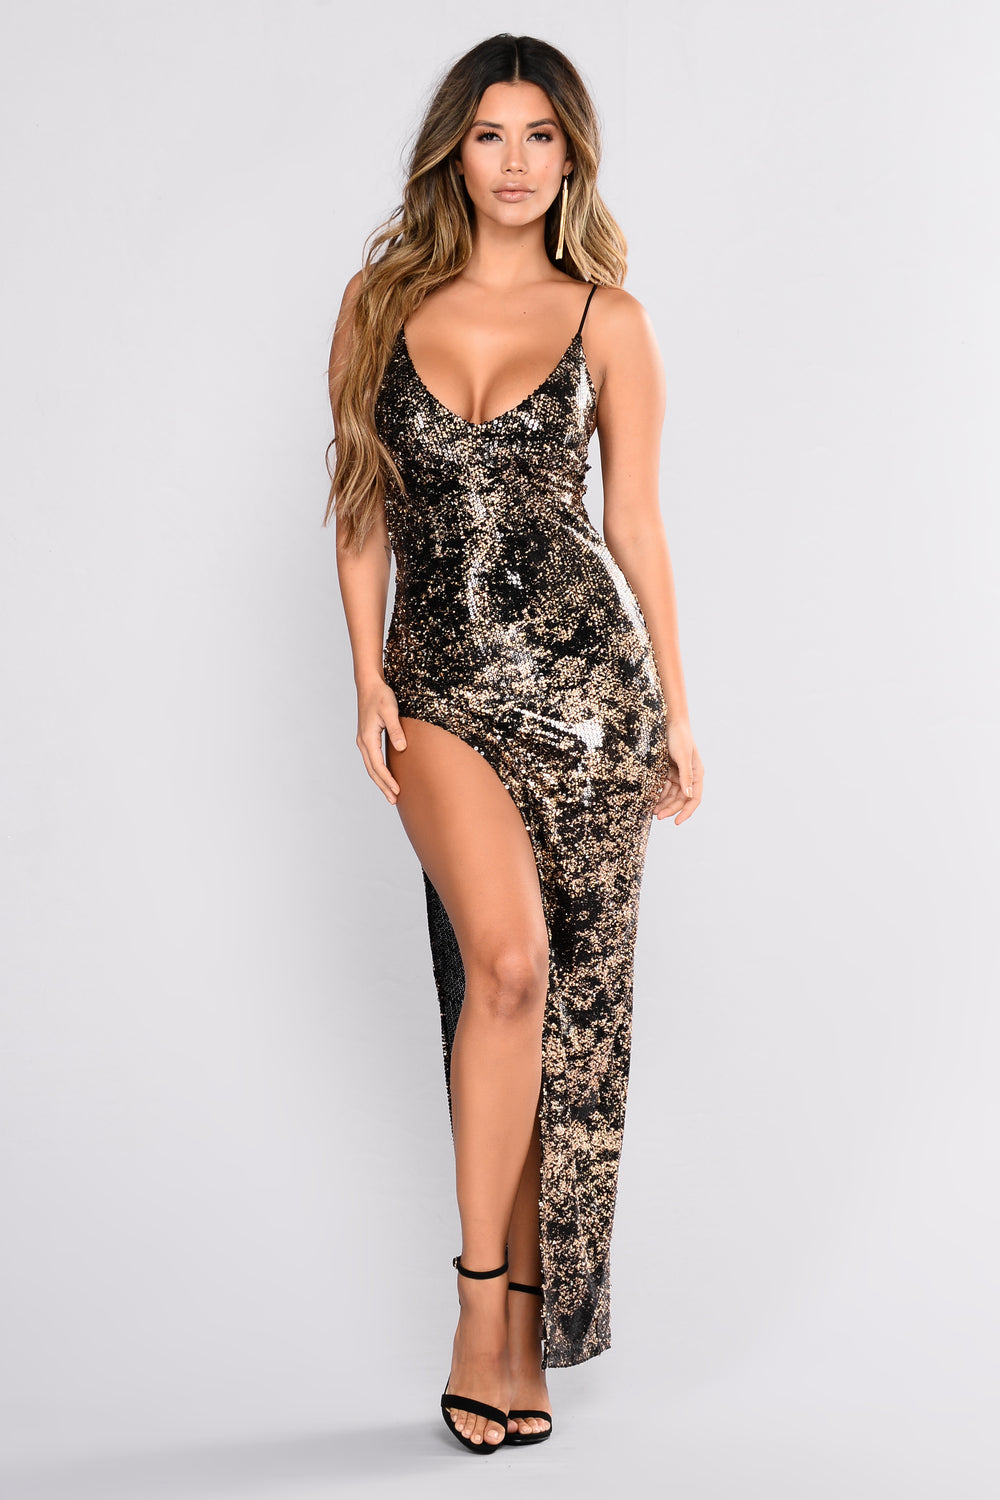 Vienna Sequin Dress - Black/Gold